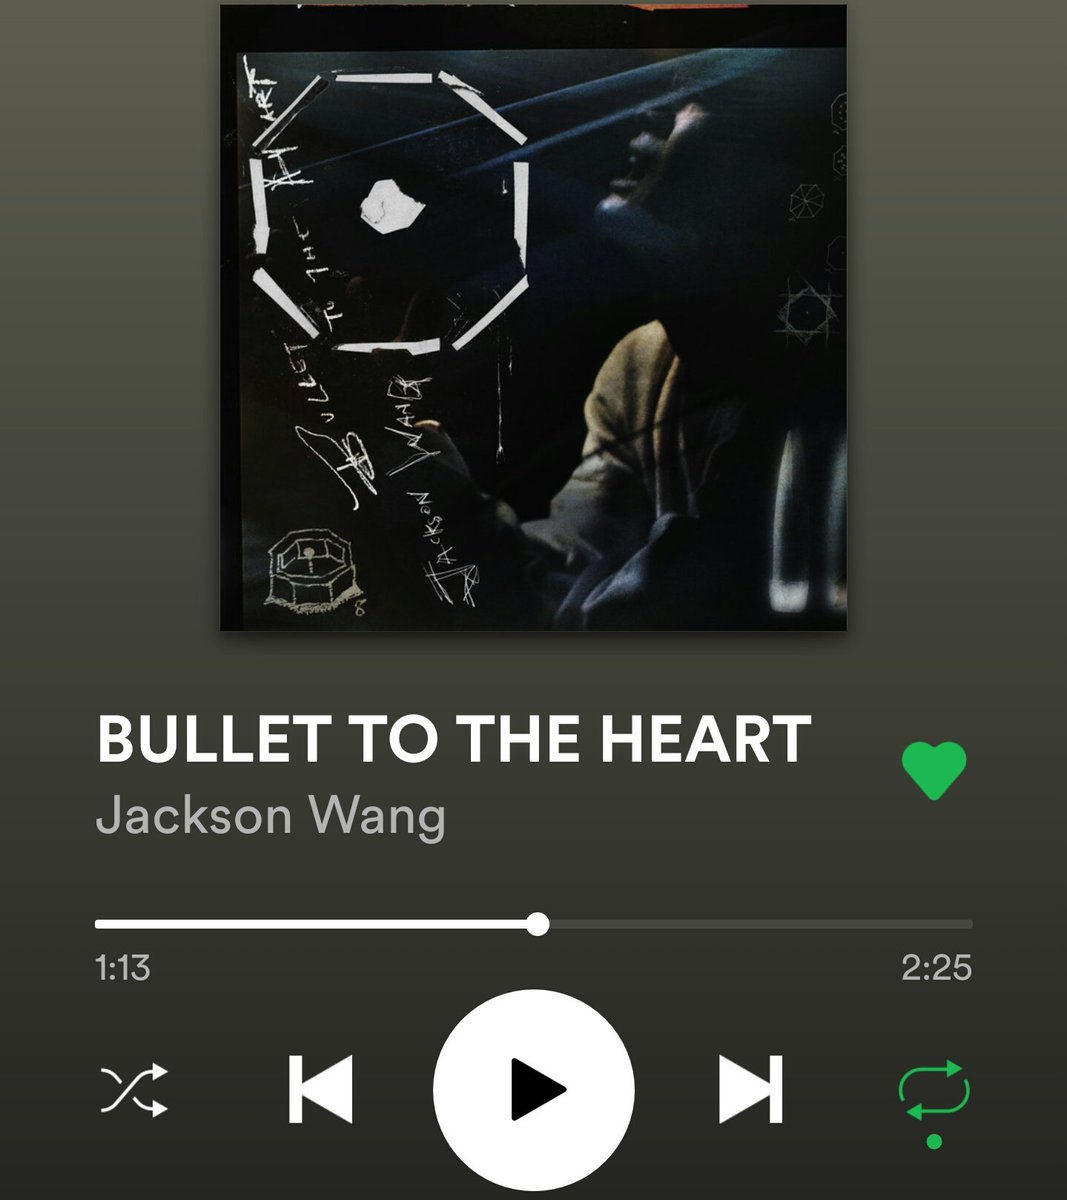 Hummmmm thats cool interesting. #Got7  #Jackys #JacksonWang  did u know...  I played #BulletToTheHeِart on repeat on spotify, on ROKU, and changed over to tv... And found out its still playing on roku 1 hr later!   New challenge! #BulletToTheHeartChallenge <br>http://pic.twitter.com/qpusHZcyCn